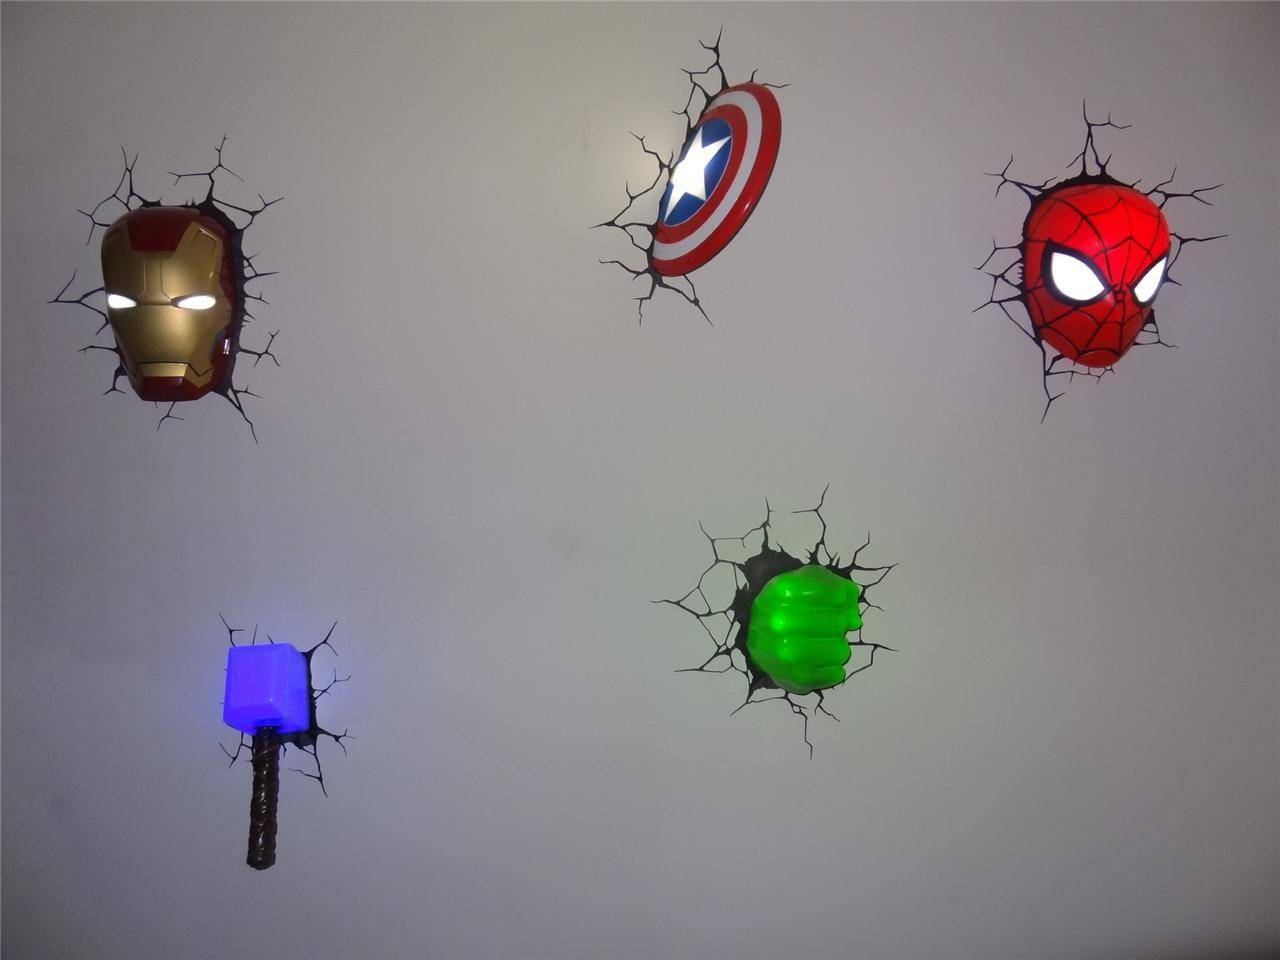 3D Wall Art Avengers Uk | Wallartideas With Regard To Most Current Marvel 3D Wall Art (View 1 of 20)